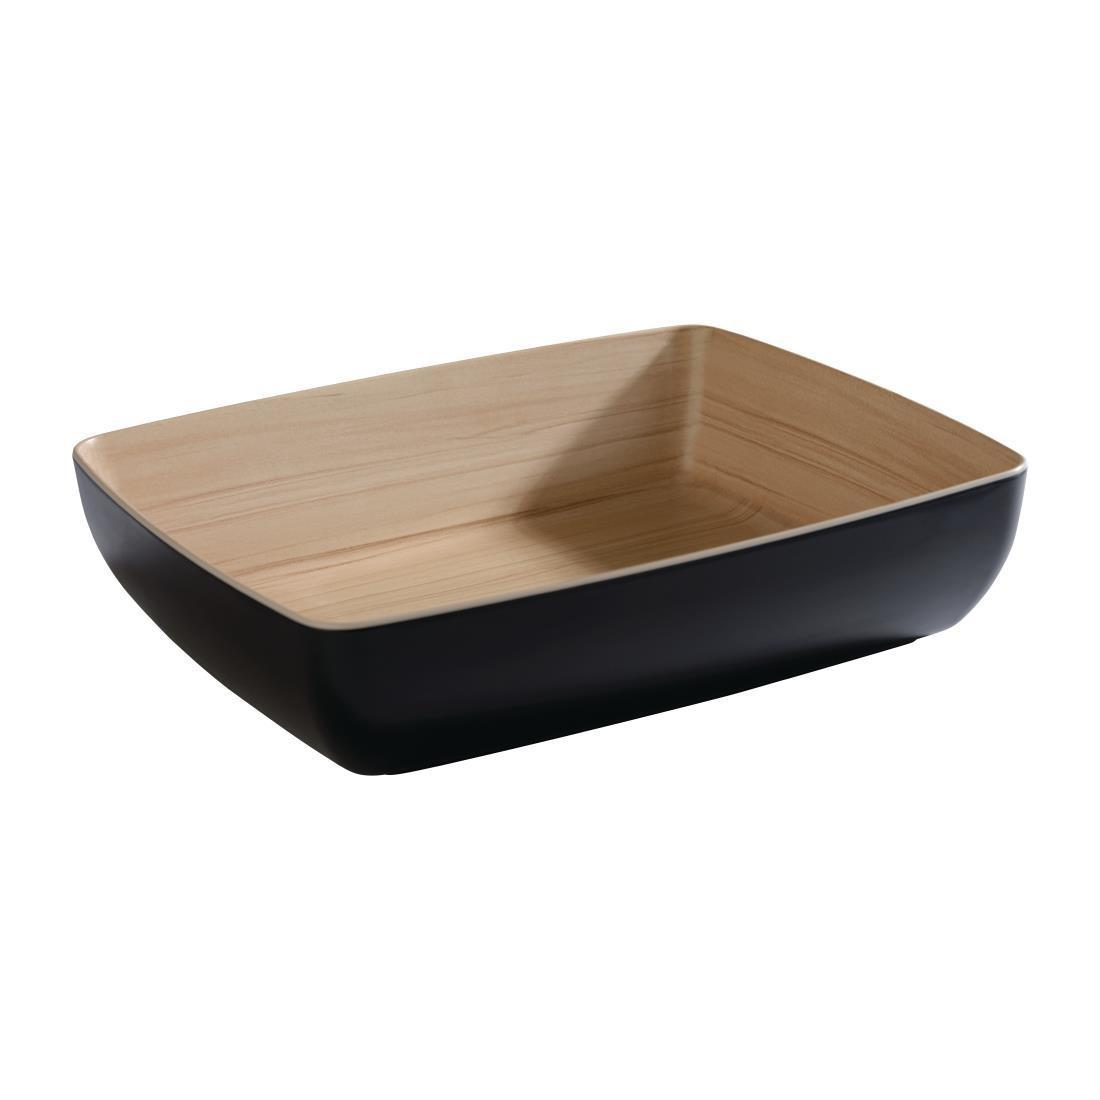 APS Frida Bowl GN1/2 Black - Each - DW065